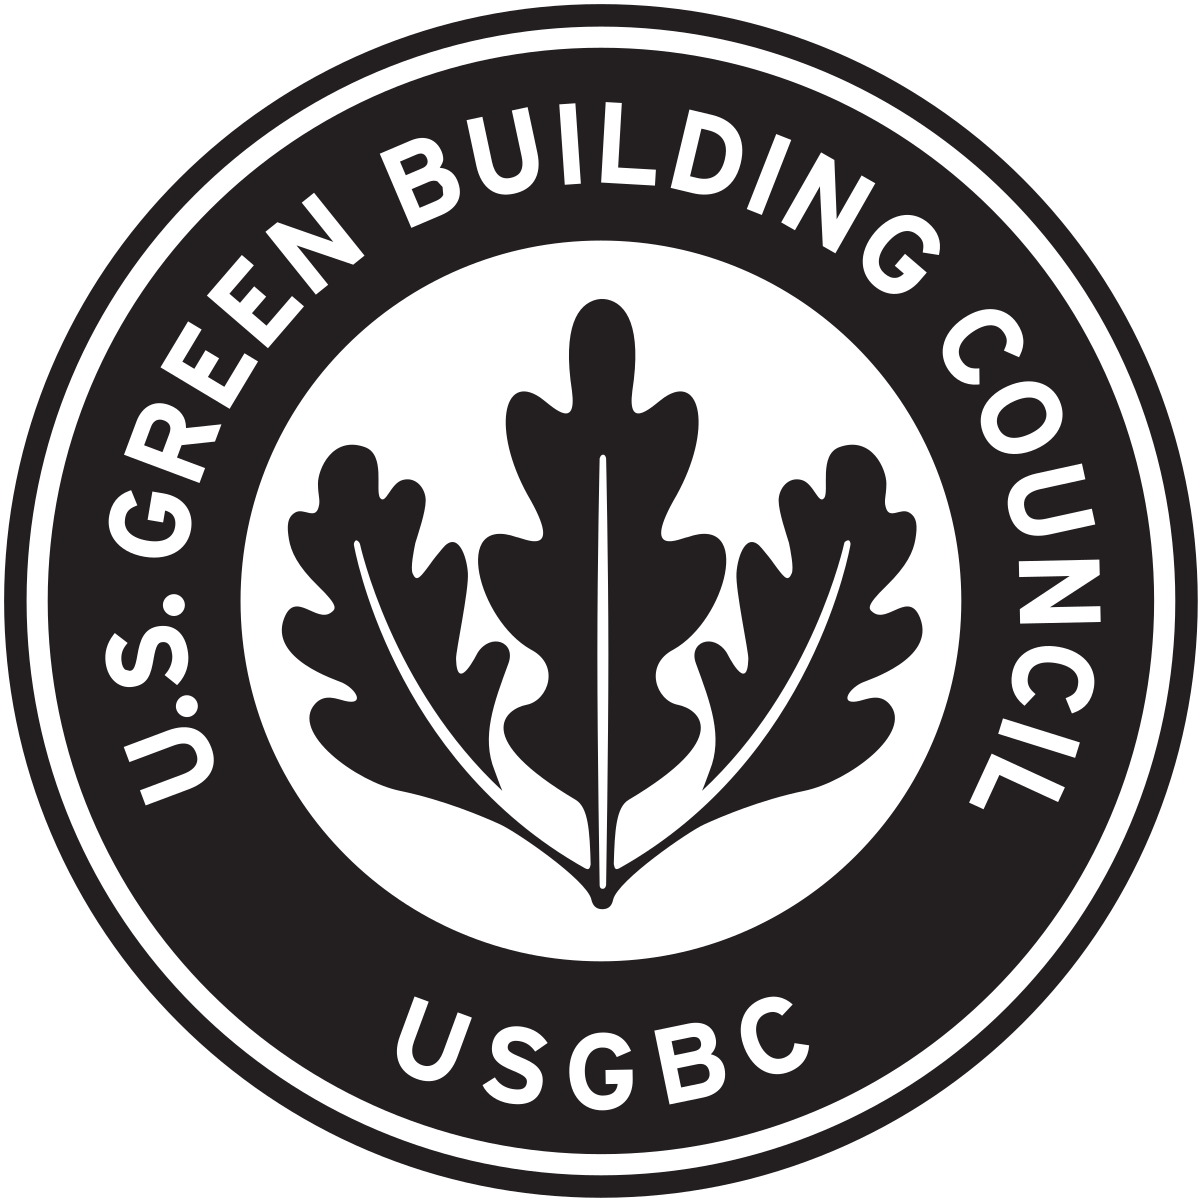 greenbuilding.png